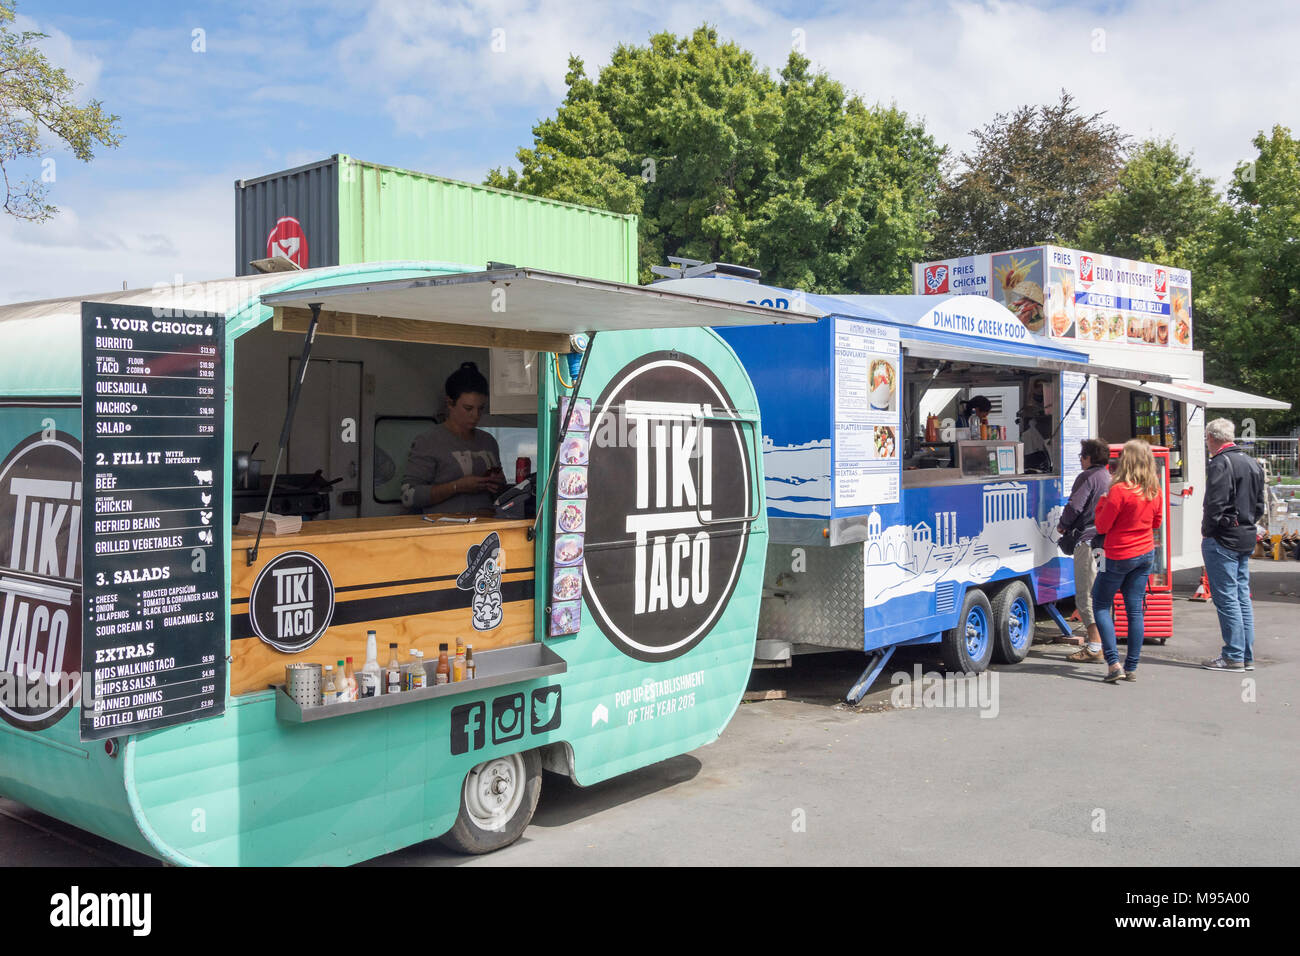 Fast food trailers, Container Mall, Cashel Street, Christchurch Central, Christchurch, Canterbury, New Zealand - Stock Image